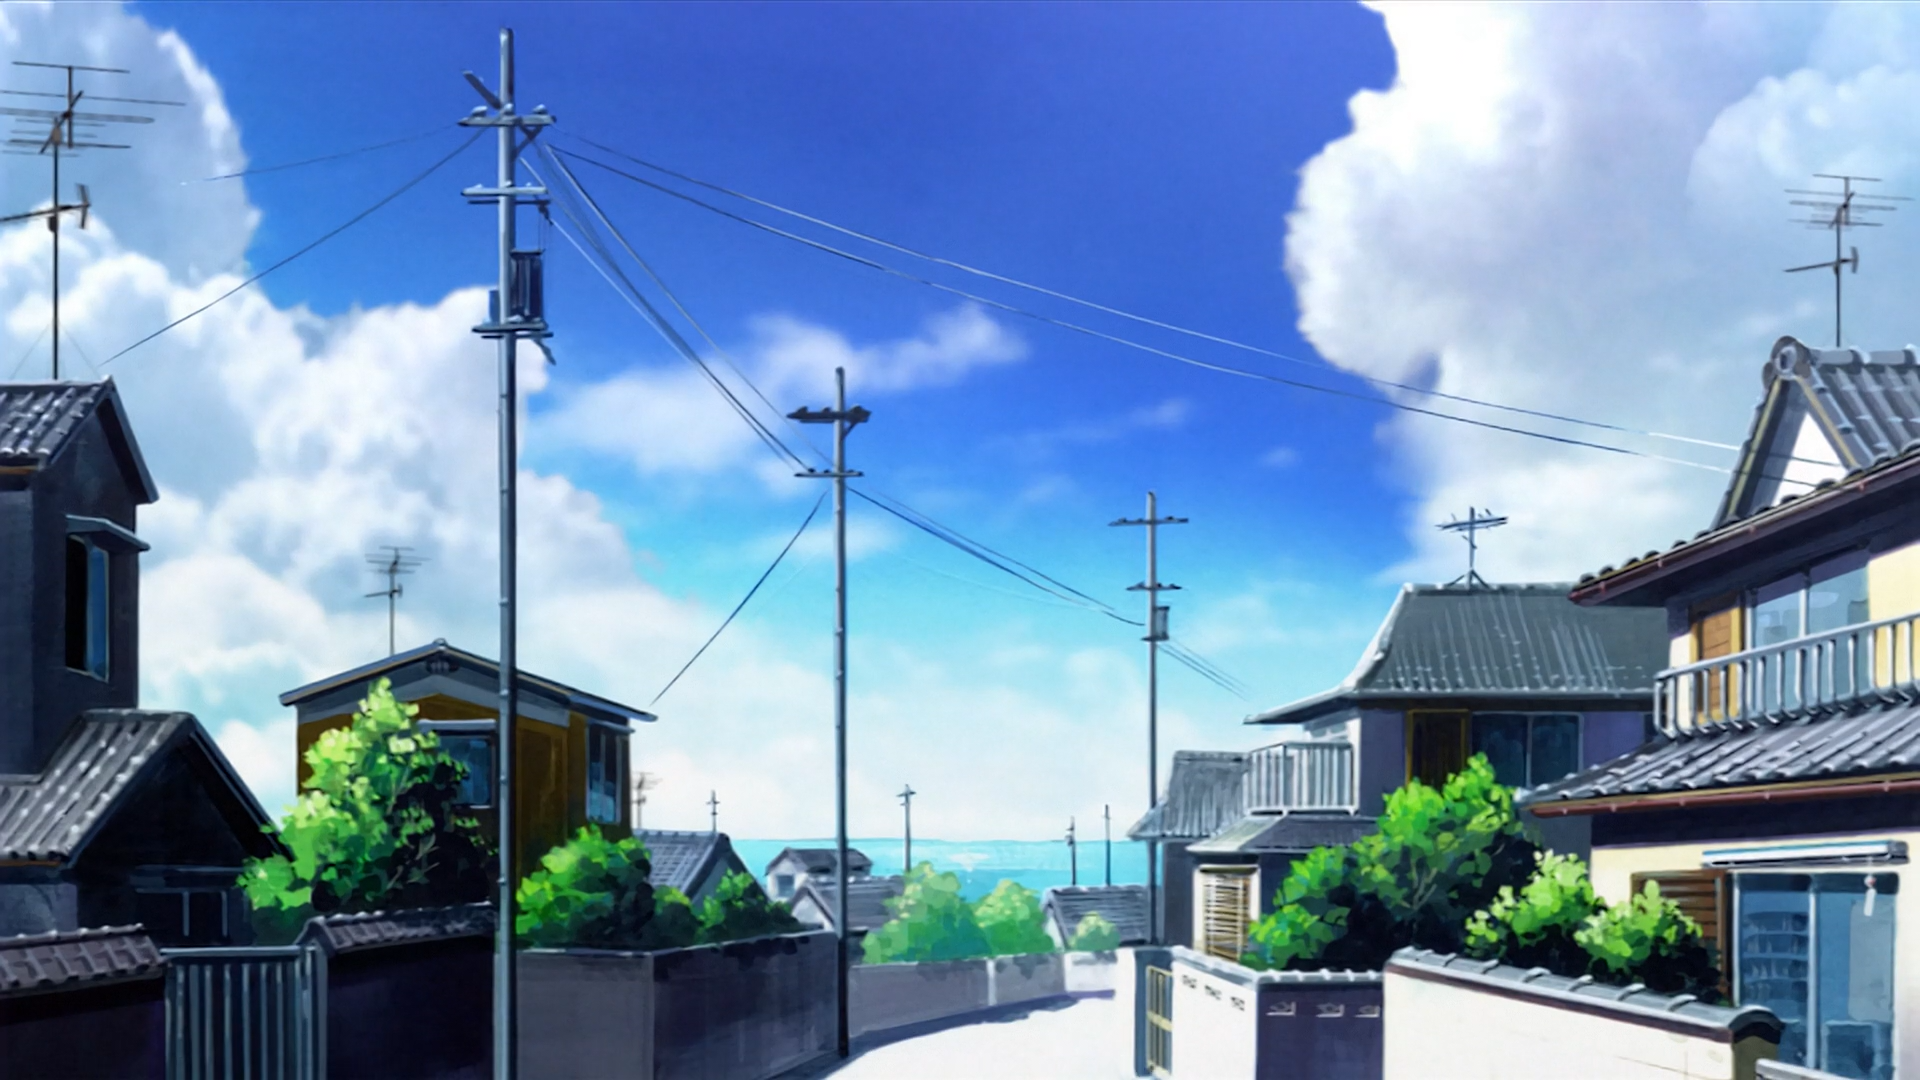 Kyoto Animation Background Art [Air] Need iPhone 6S